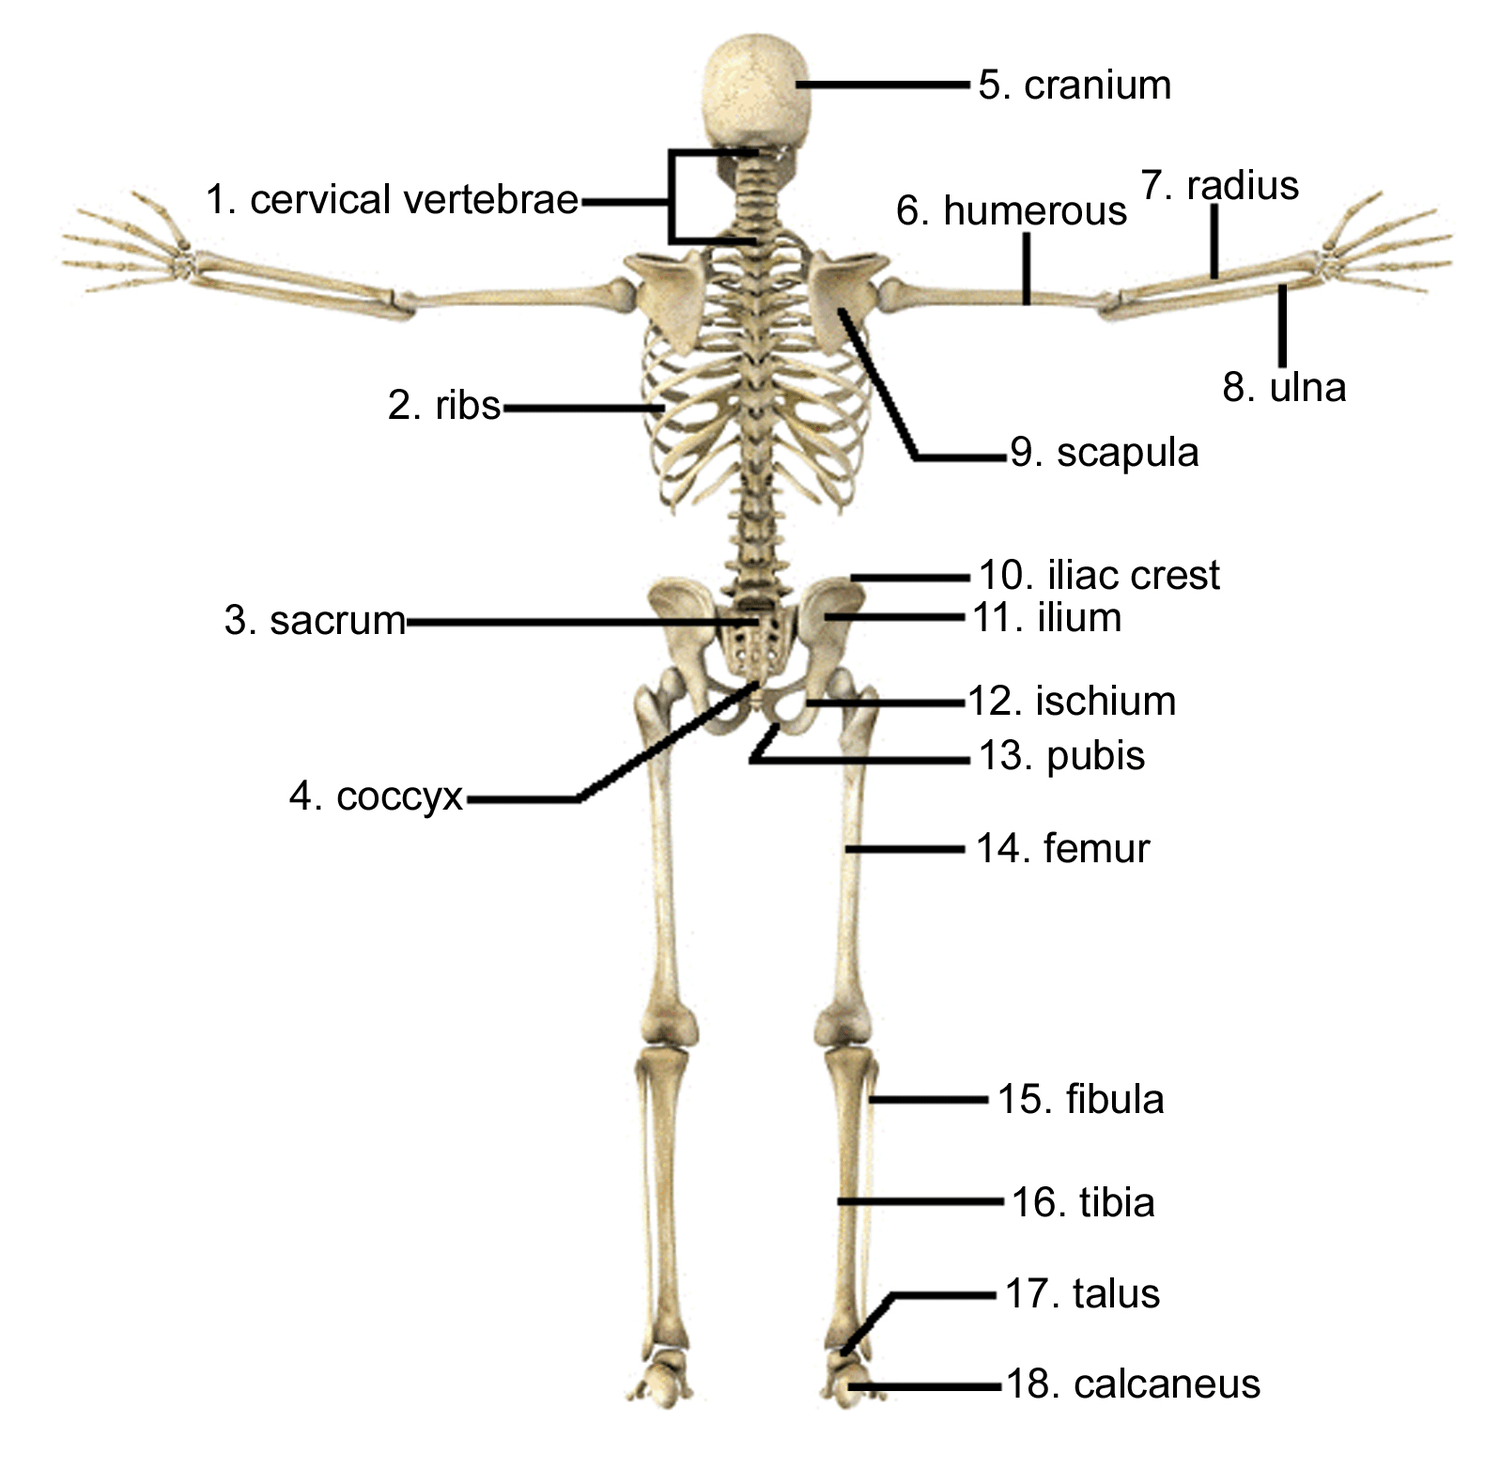 hight resolution of what bone is located on the upper arm